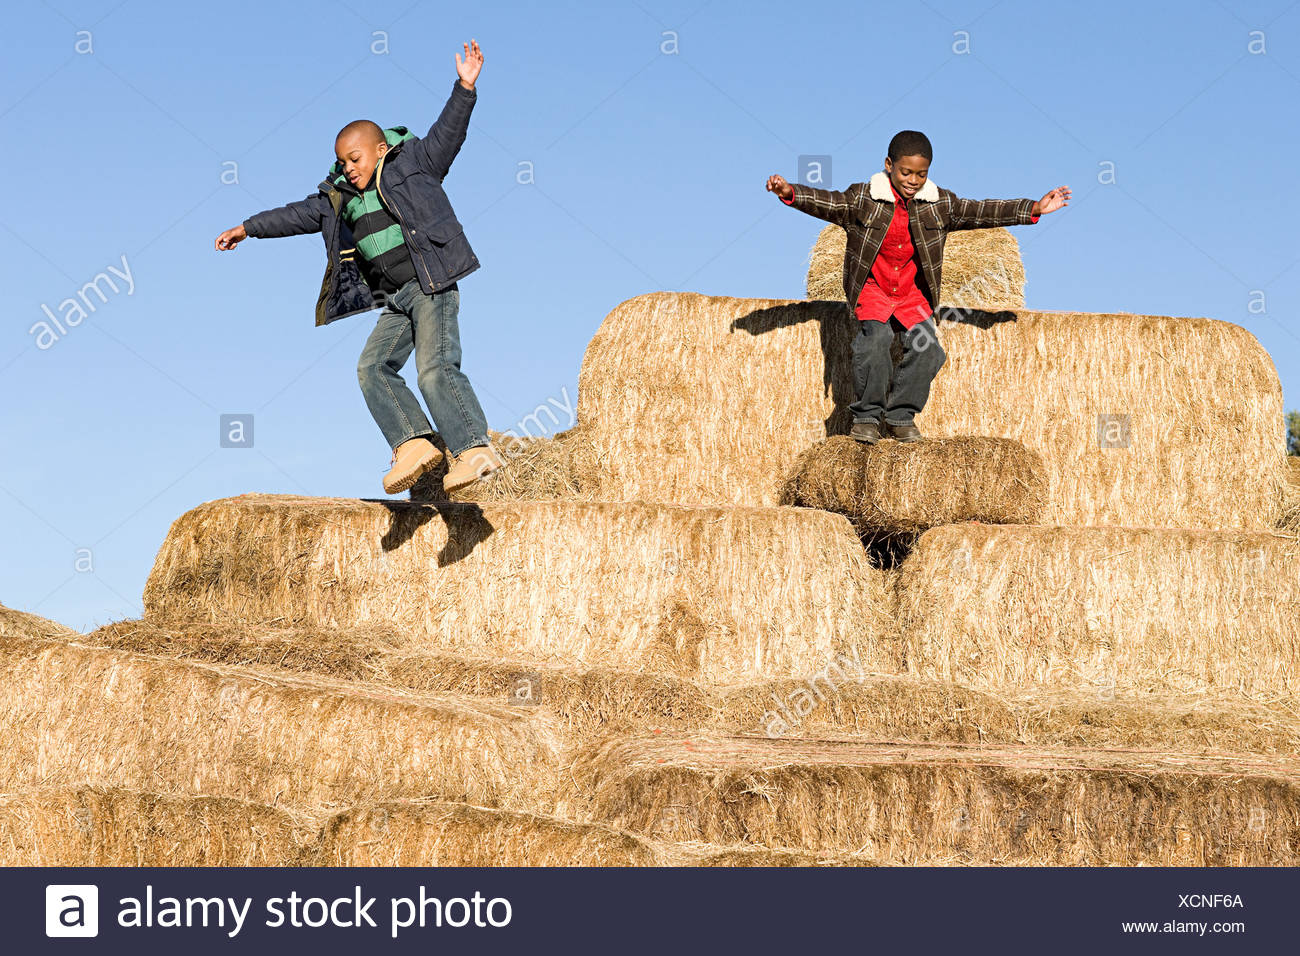 Boys jumping off bales of hay - Stock Image